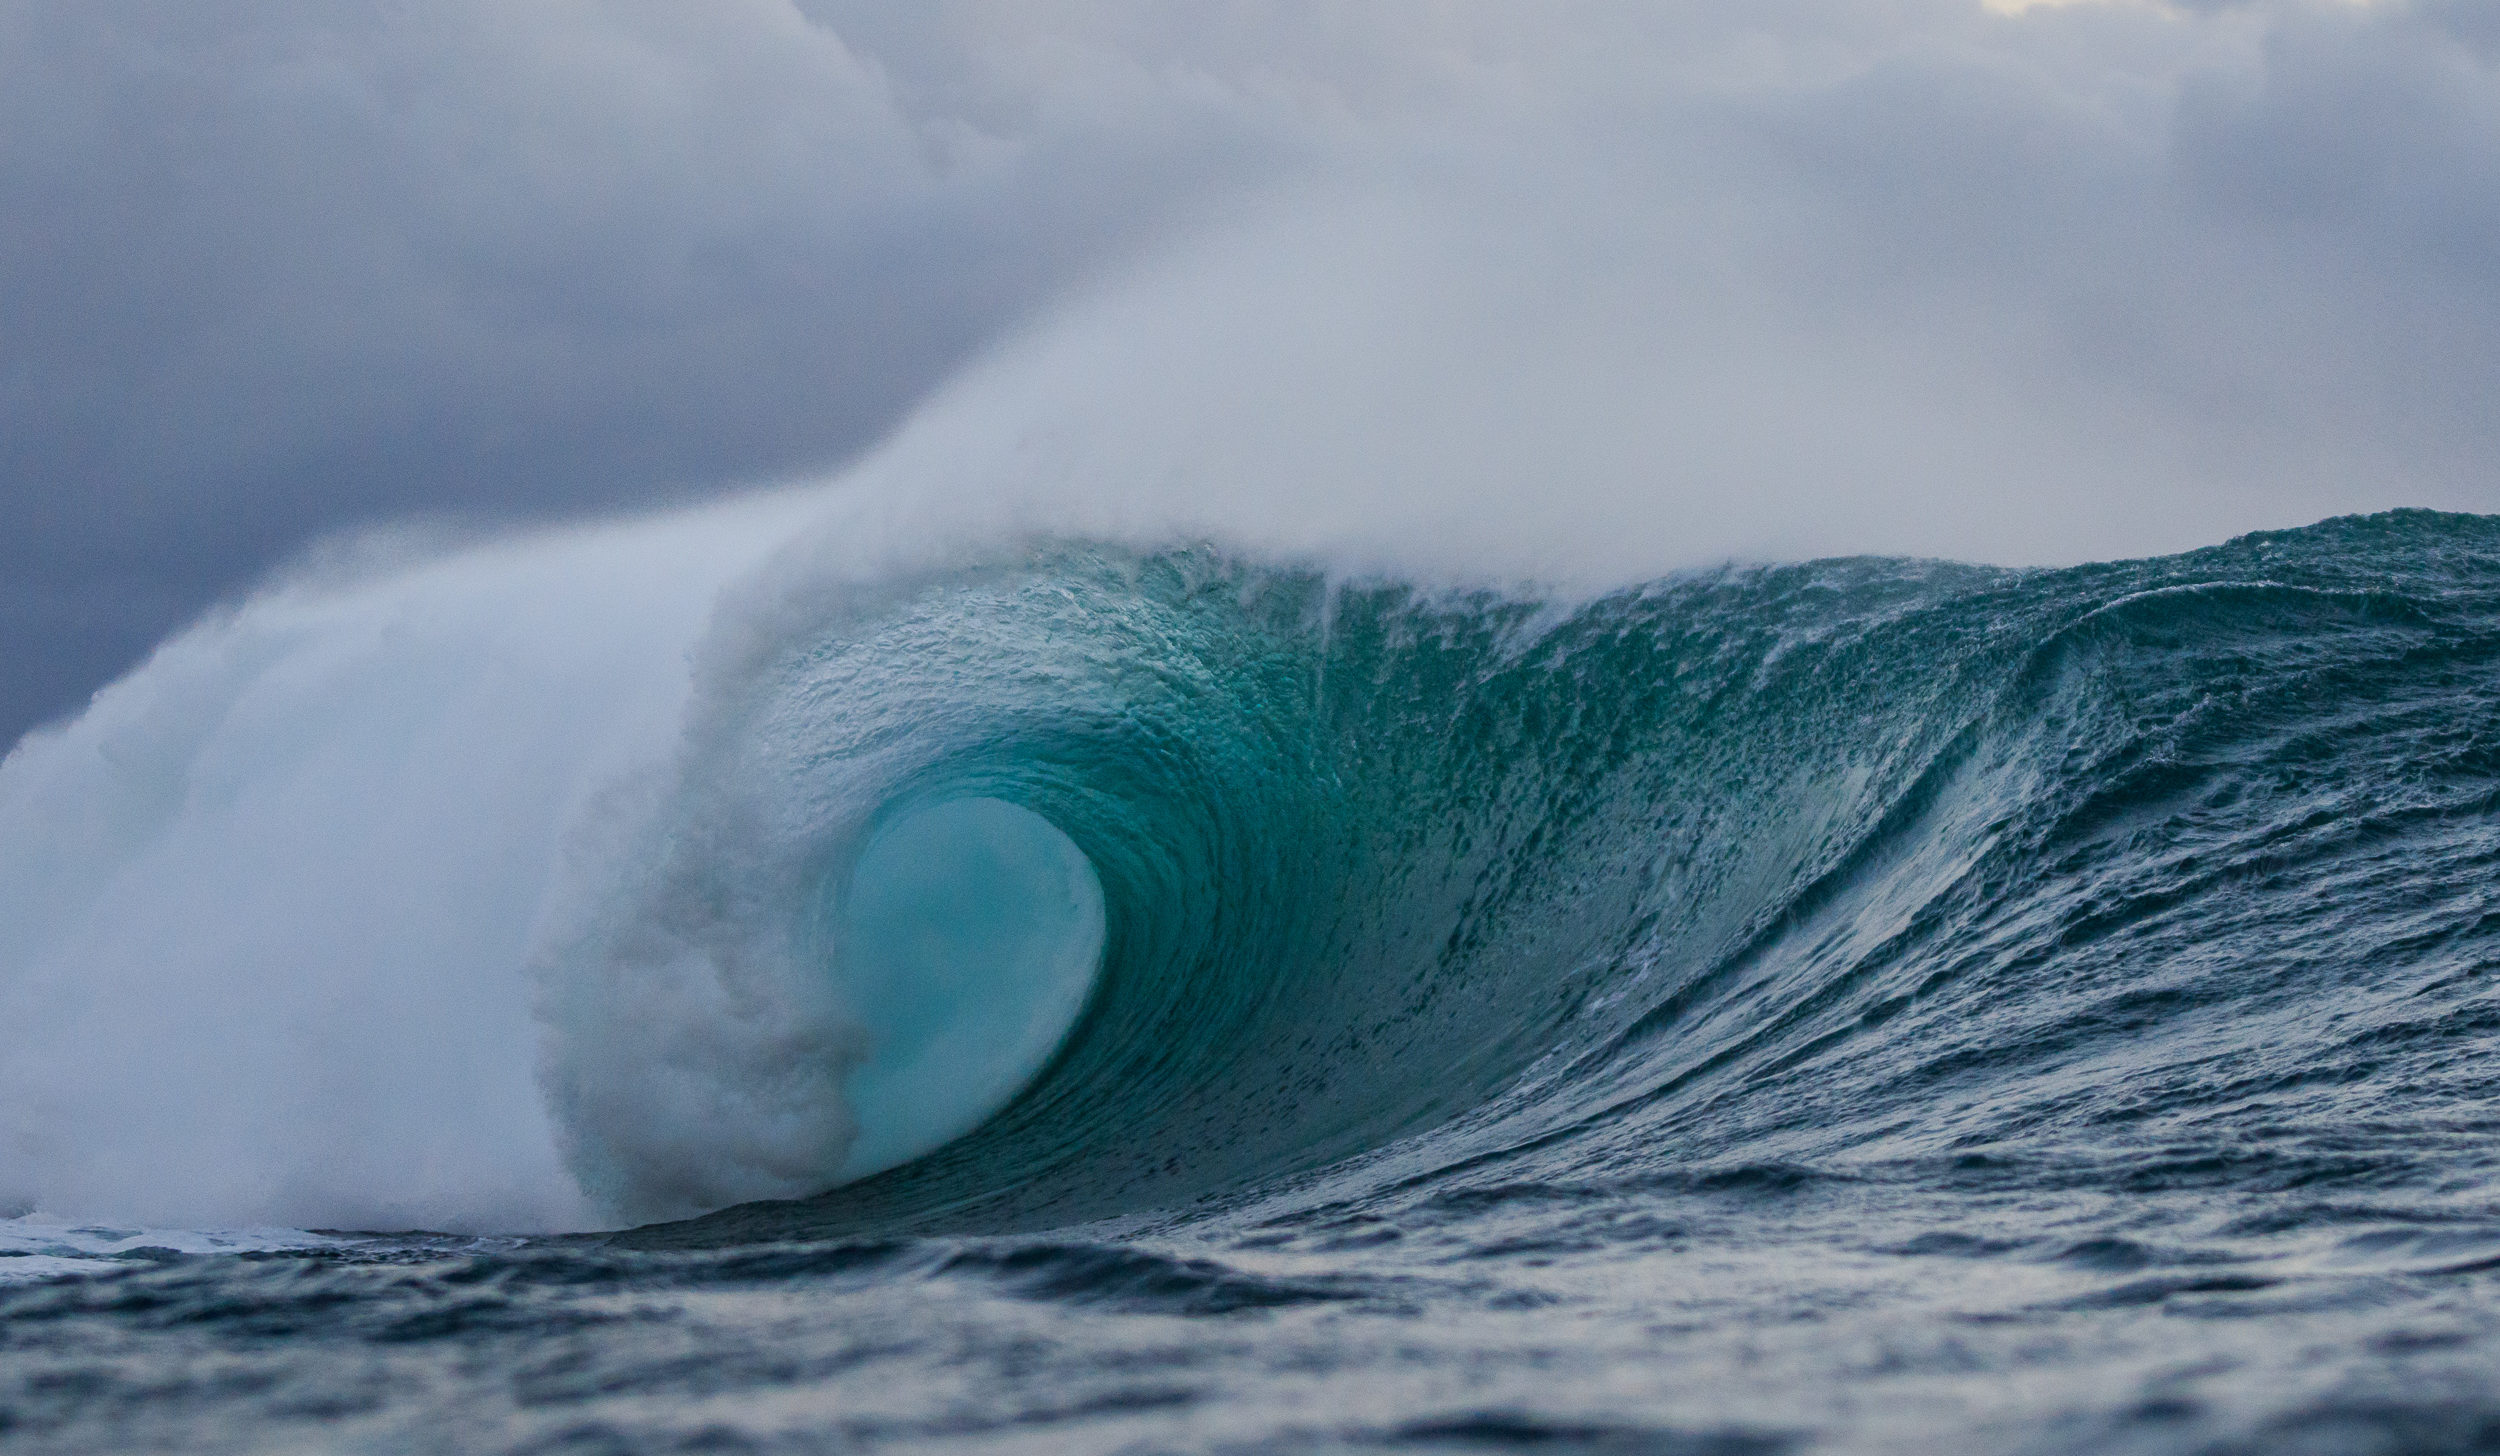 71c4b577d4 What to Expect Whenever Pipeline Wakes Up - Surfline